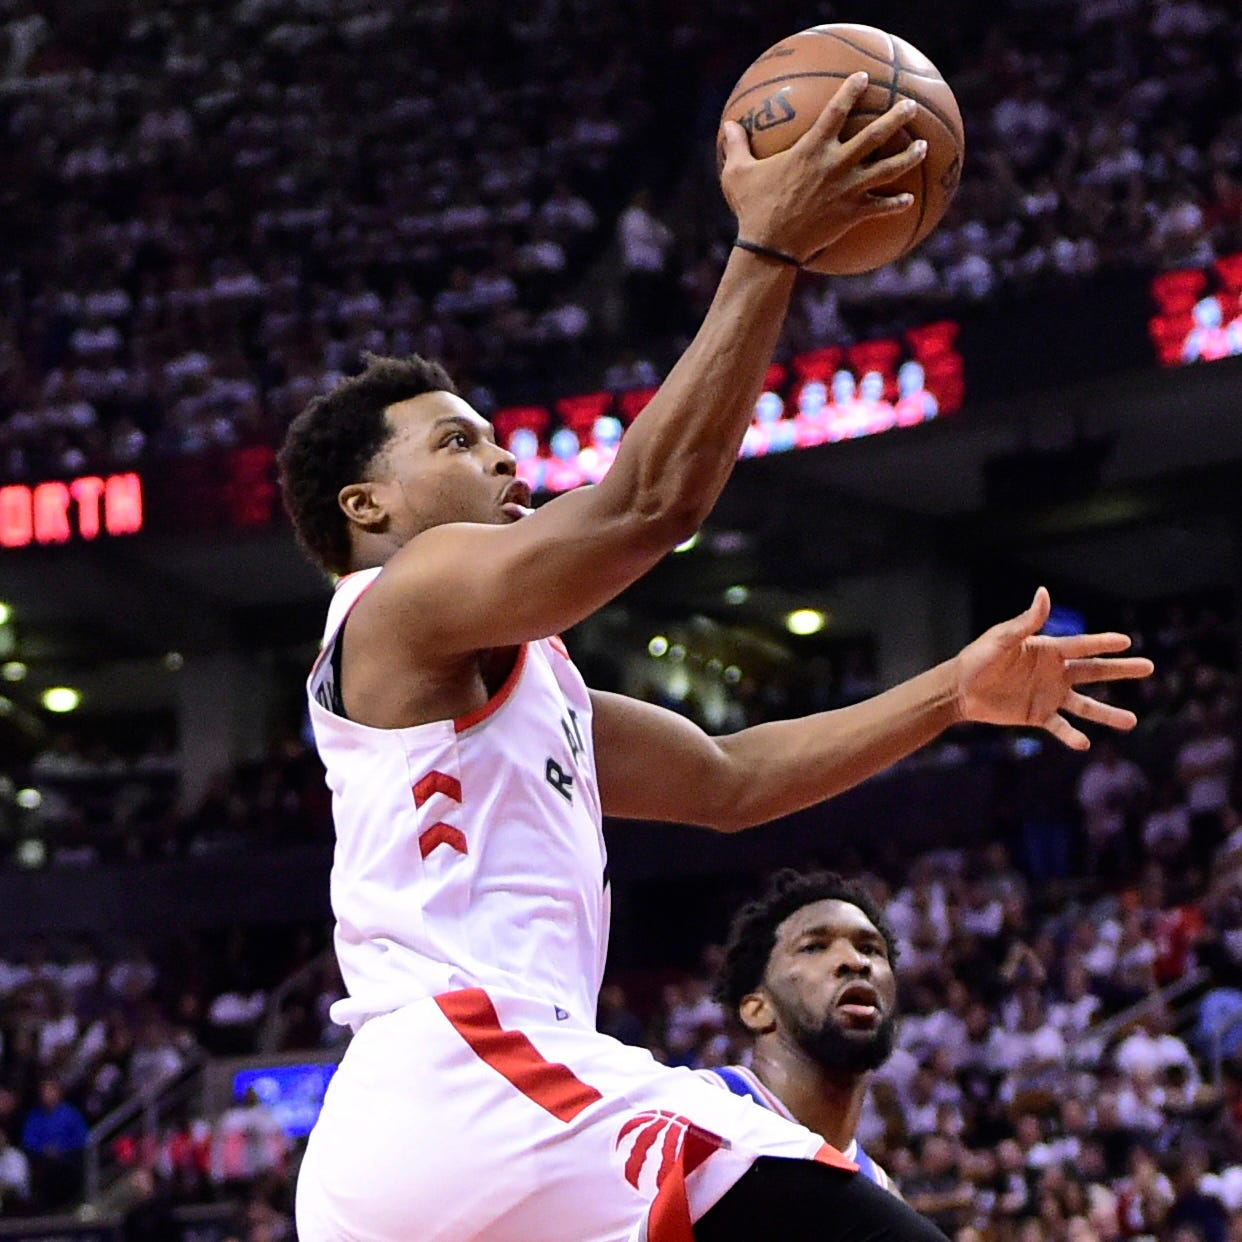 Raptors rout 76ers in Game 5 to take 3-2 series lead in Eastern Conference semifinals